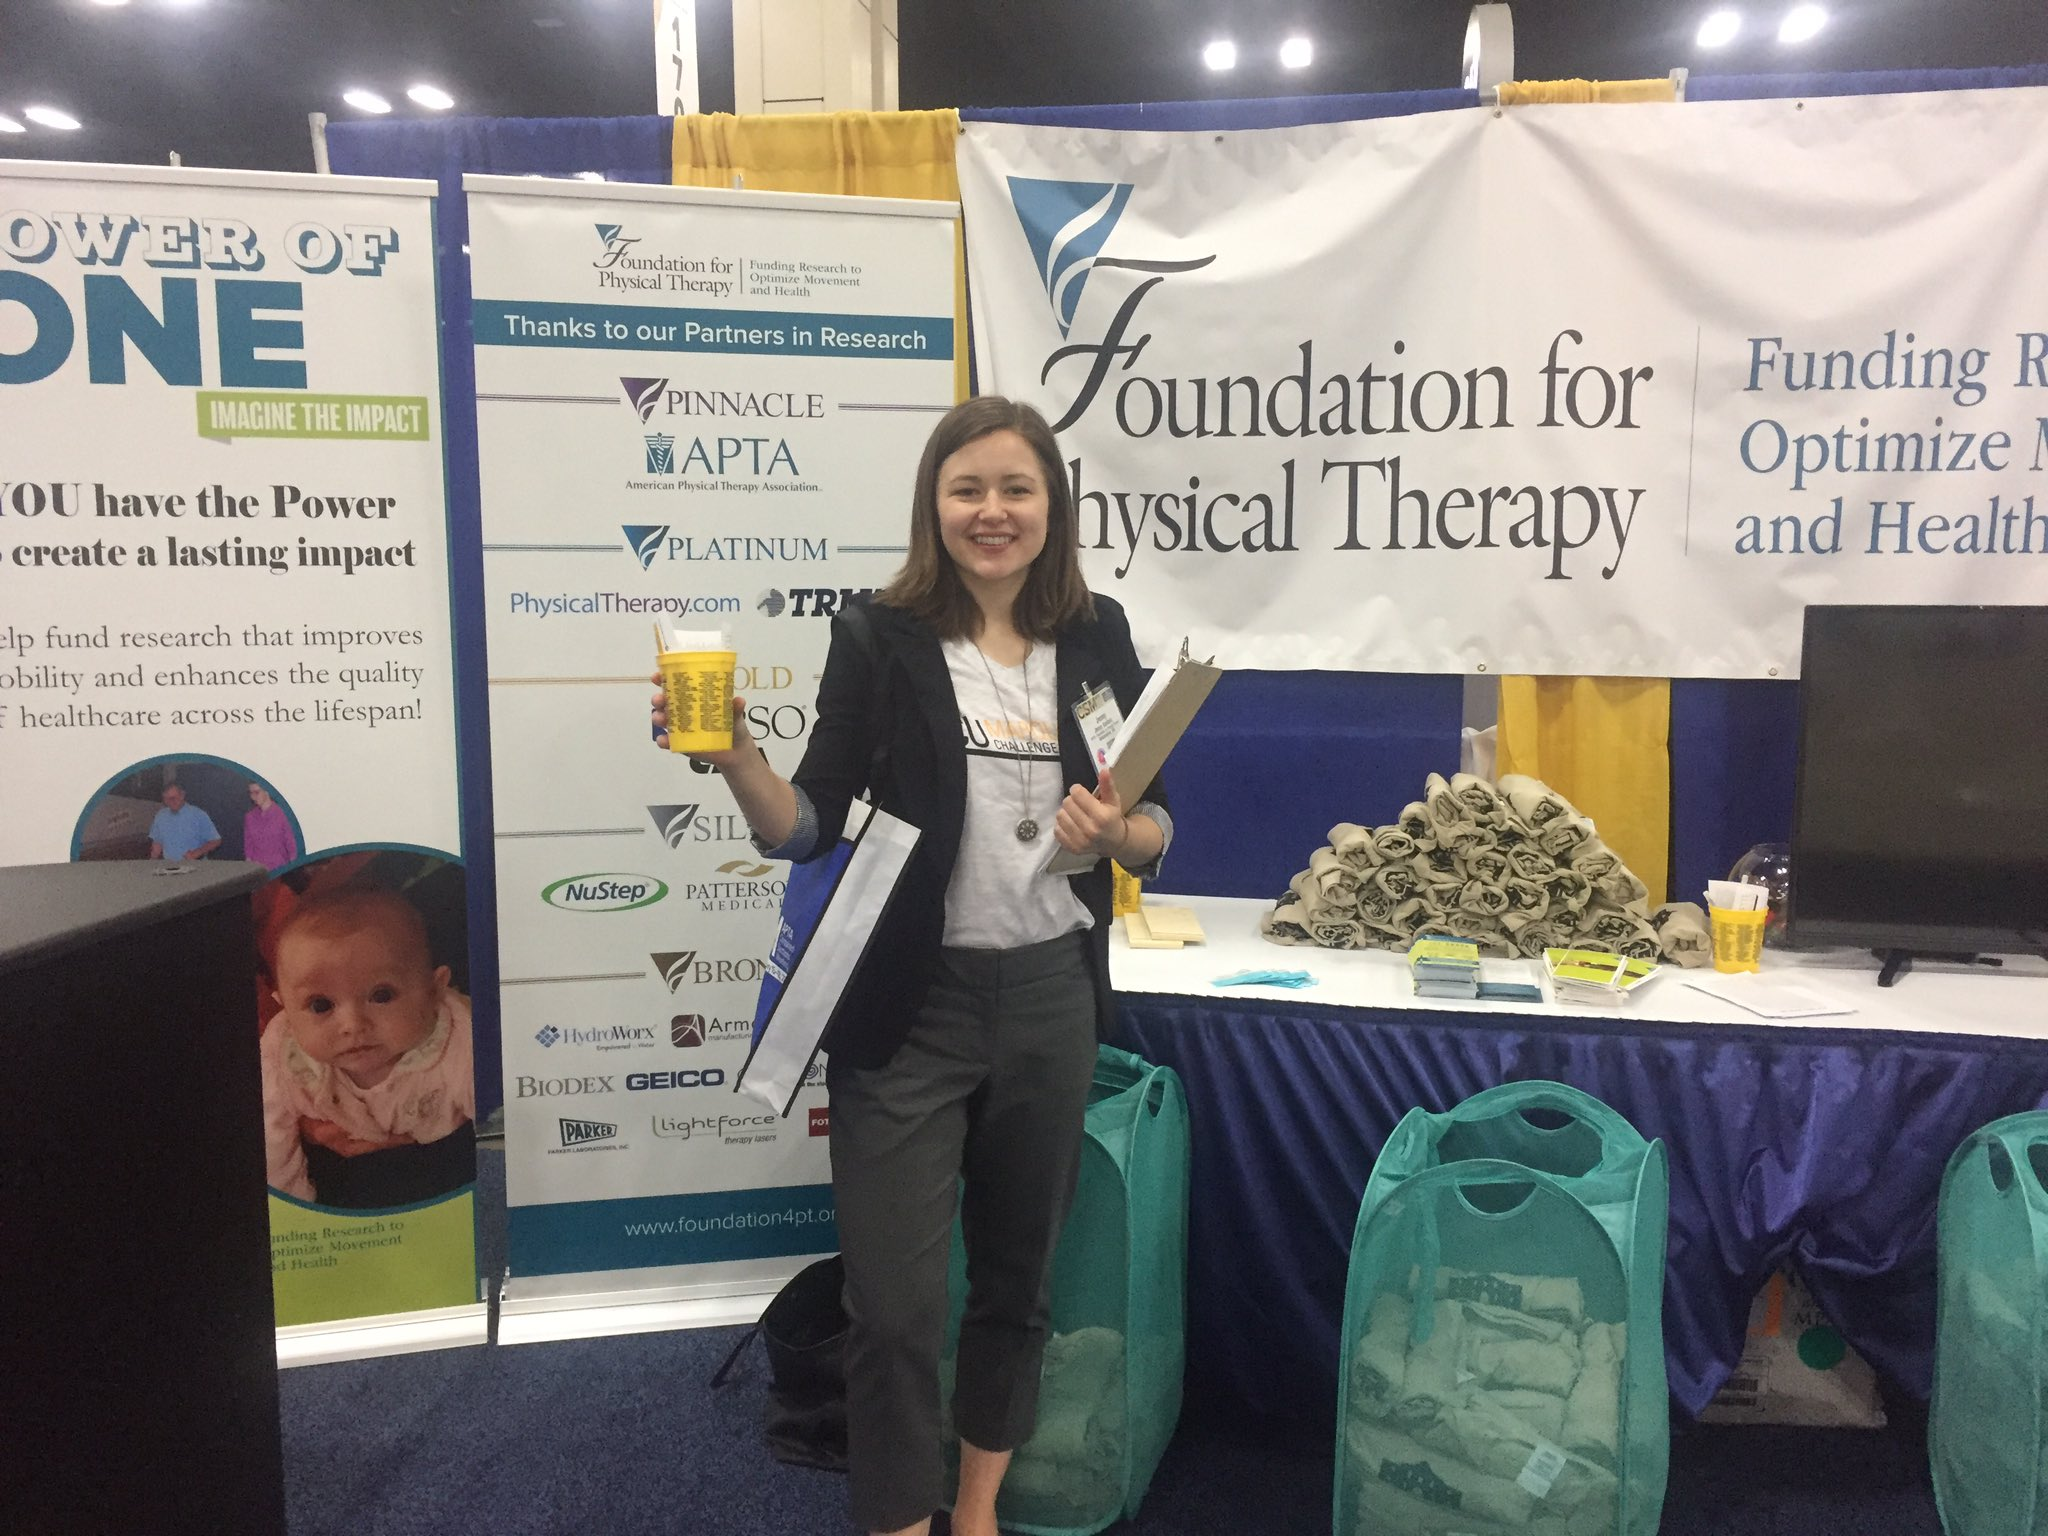 Jobs for impact physical therapy - Marquette Challenge On Twitter Stop By The Foundation For Physical Therapy Booth In Aisle 1500 Till 11am We Have A Free Cup And Badge Banner For You